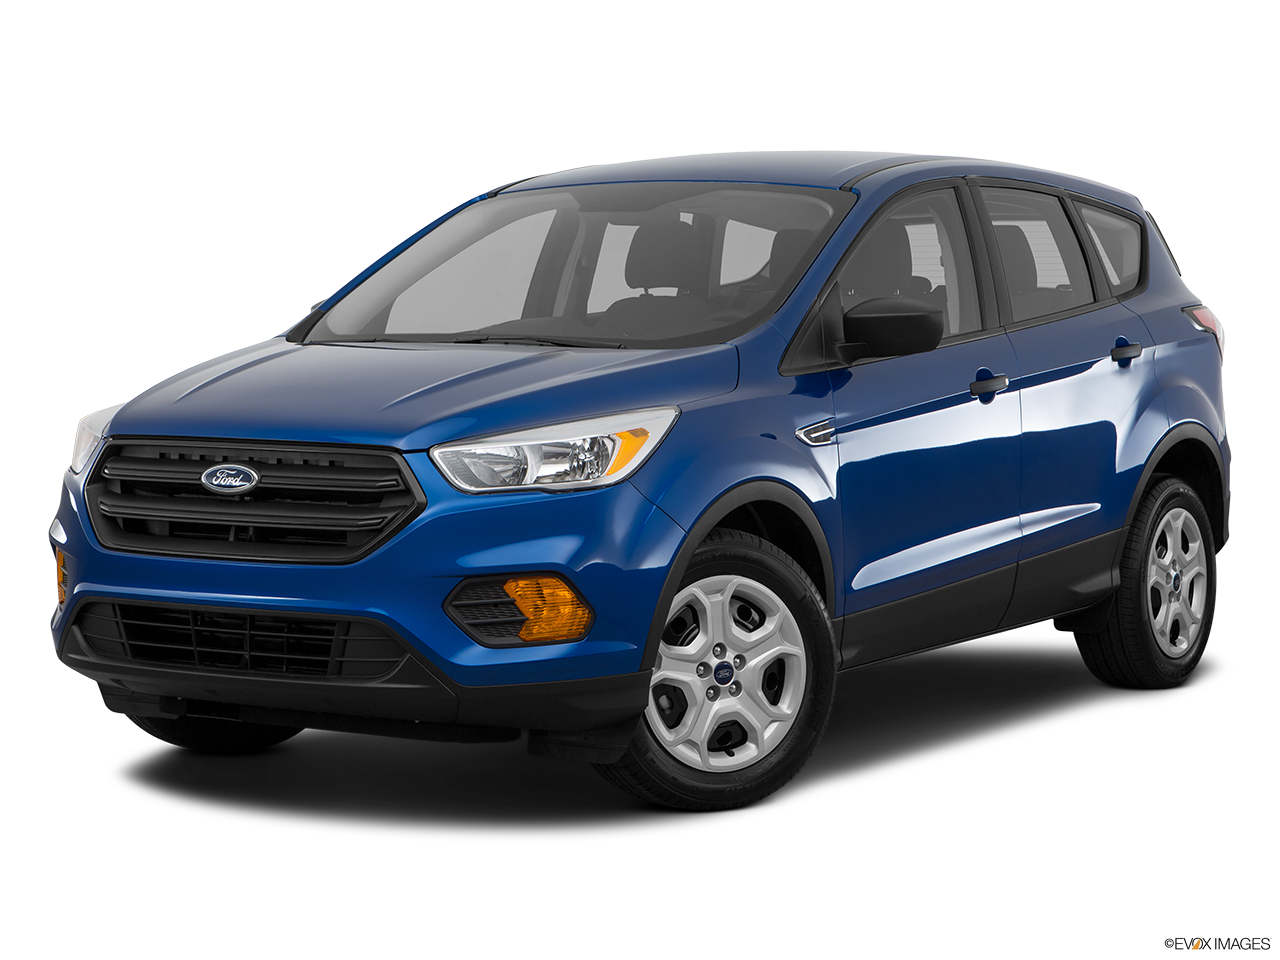 Test Drive A 2017 Ford Escape at All Star Ford Canton in Canton